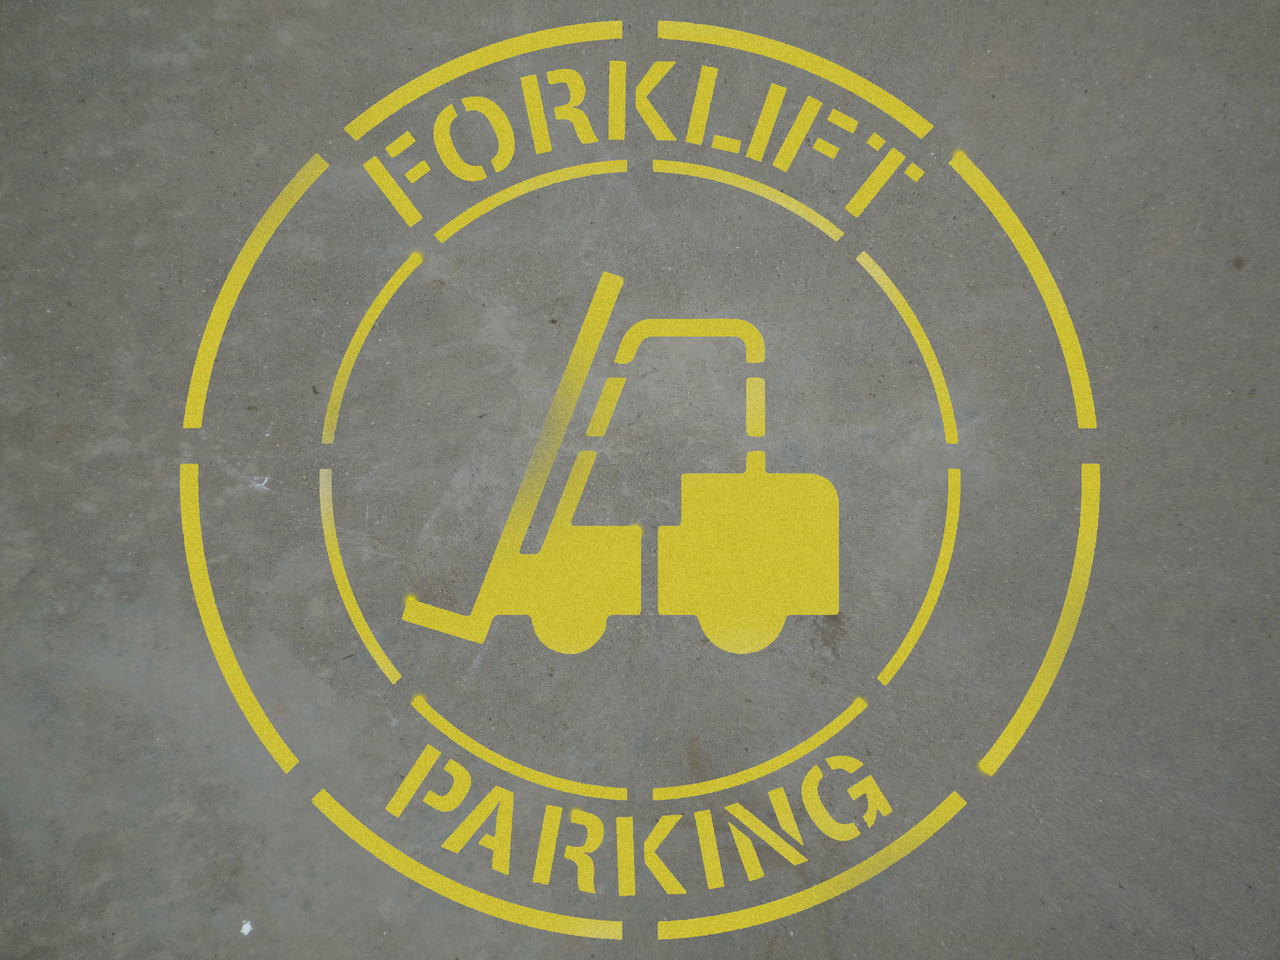 No Parking wall art stencil,Strong,Reusable,Recyclable